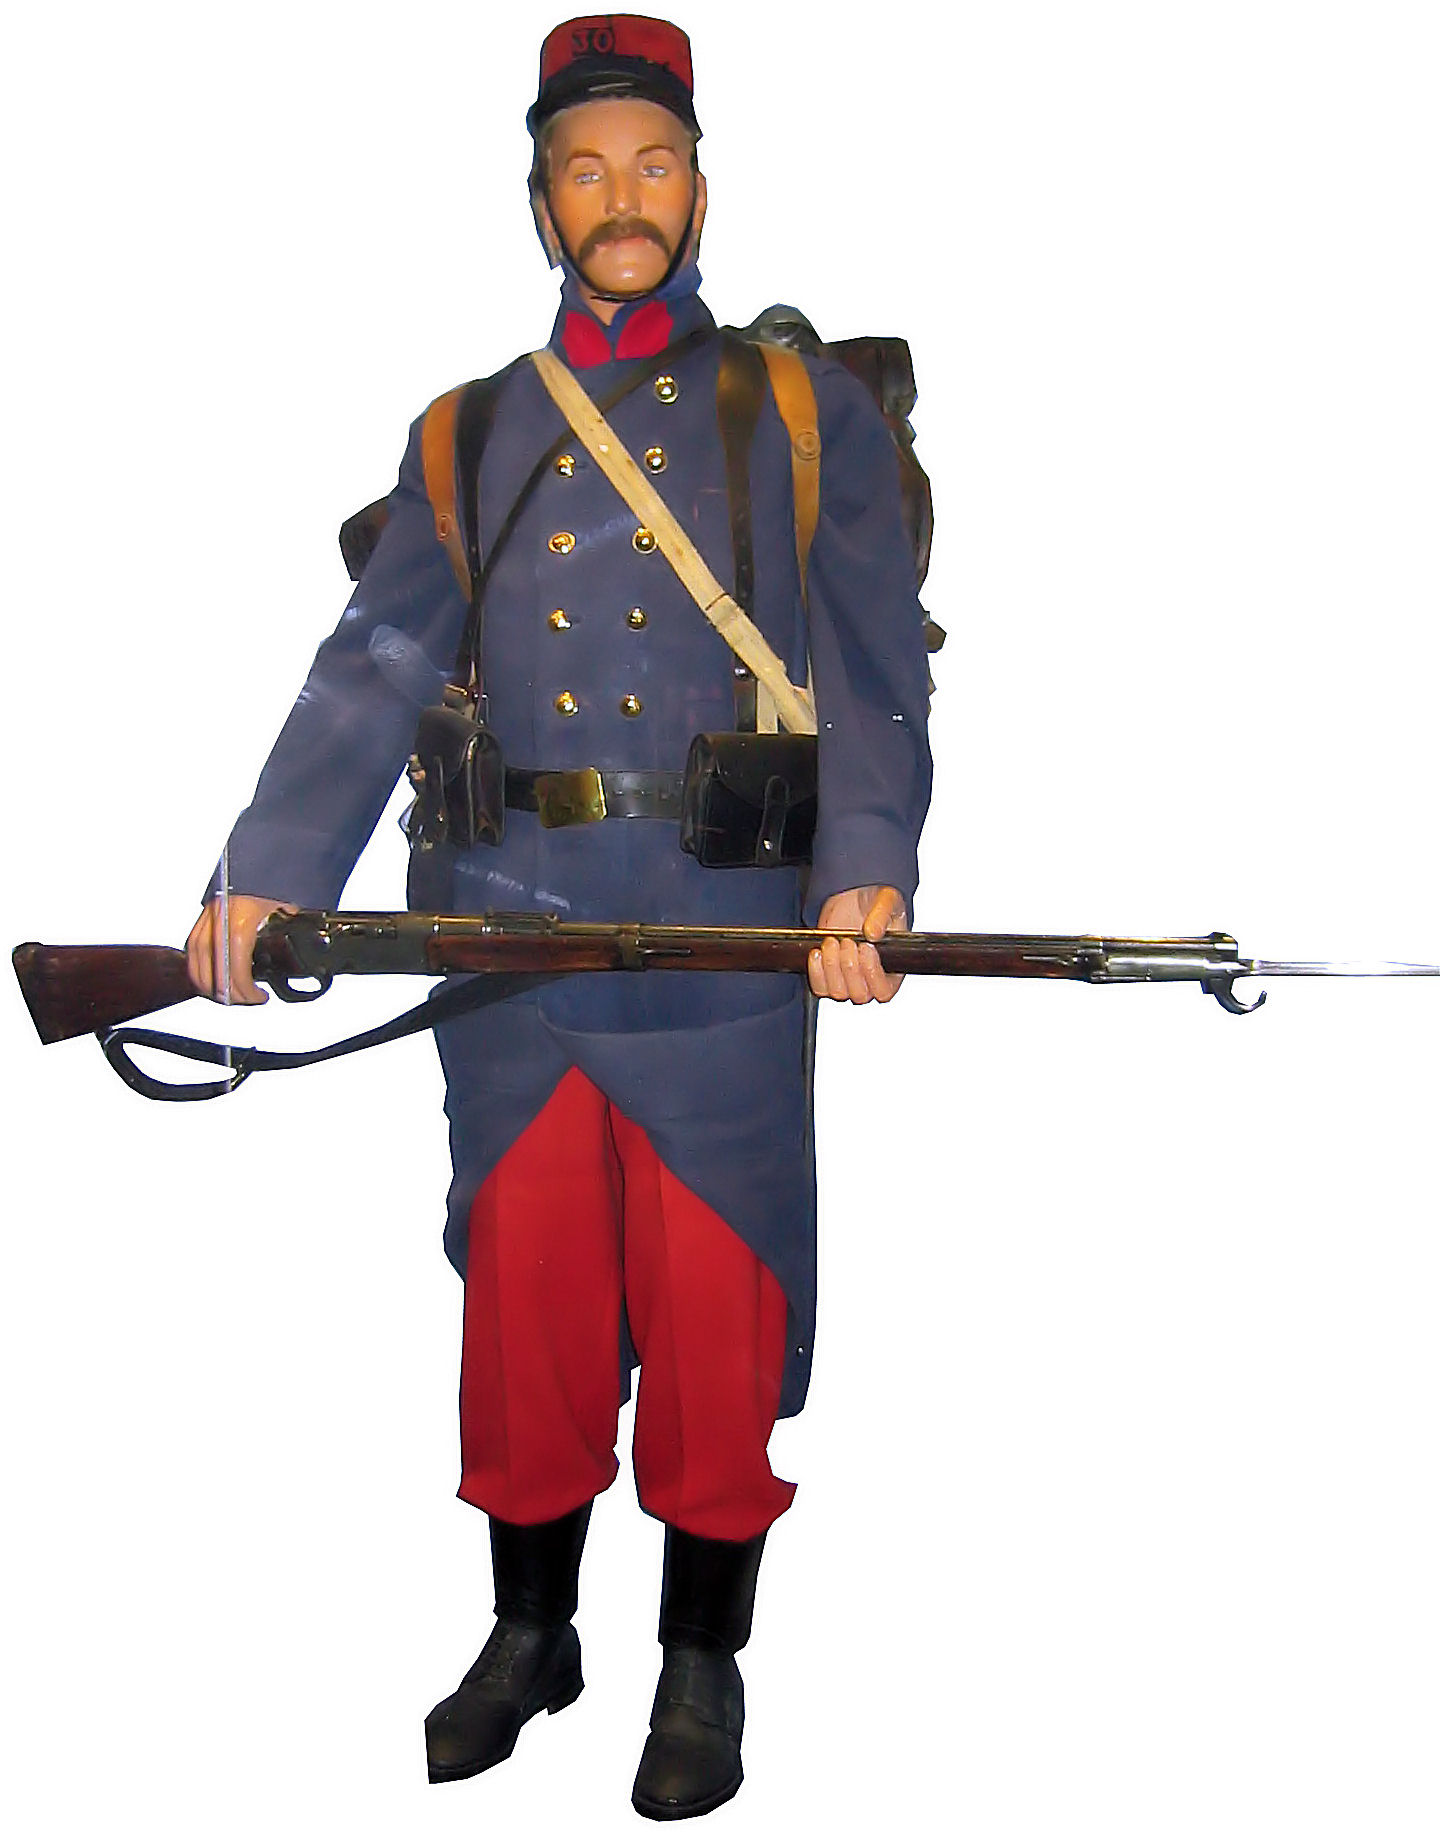 https://upload.wikimedia.org/wikipedia/commons/f/f4/French_soldier_early_uniform_WWI.JPG